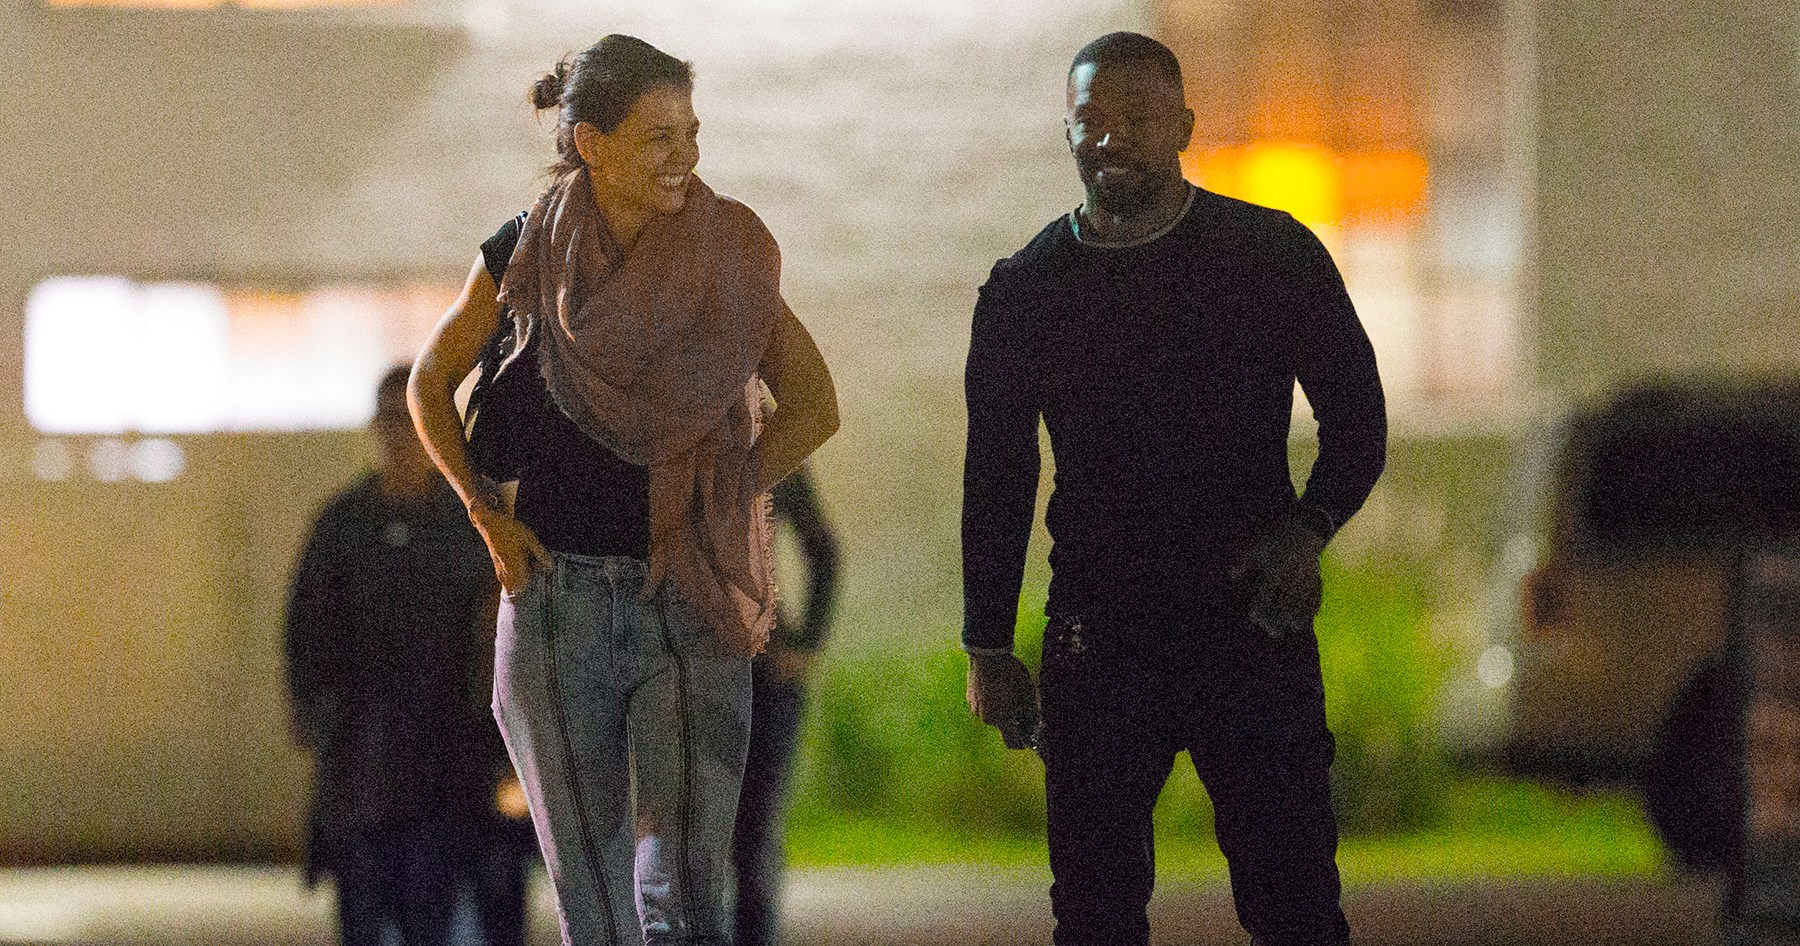 Katie Holmes and Jamie Foxx Giggle Together on Rare Public Outing: Pics